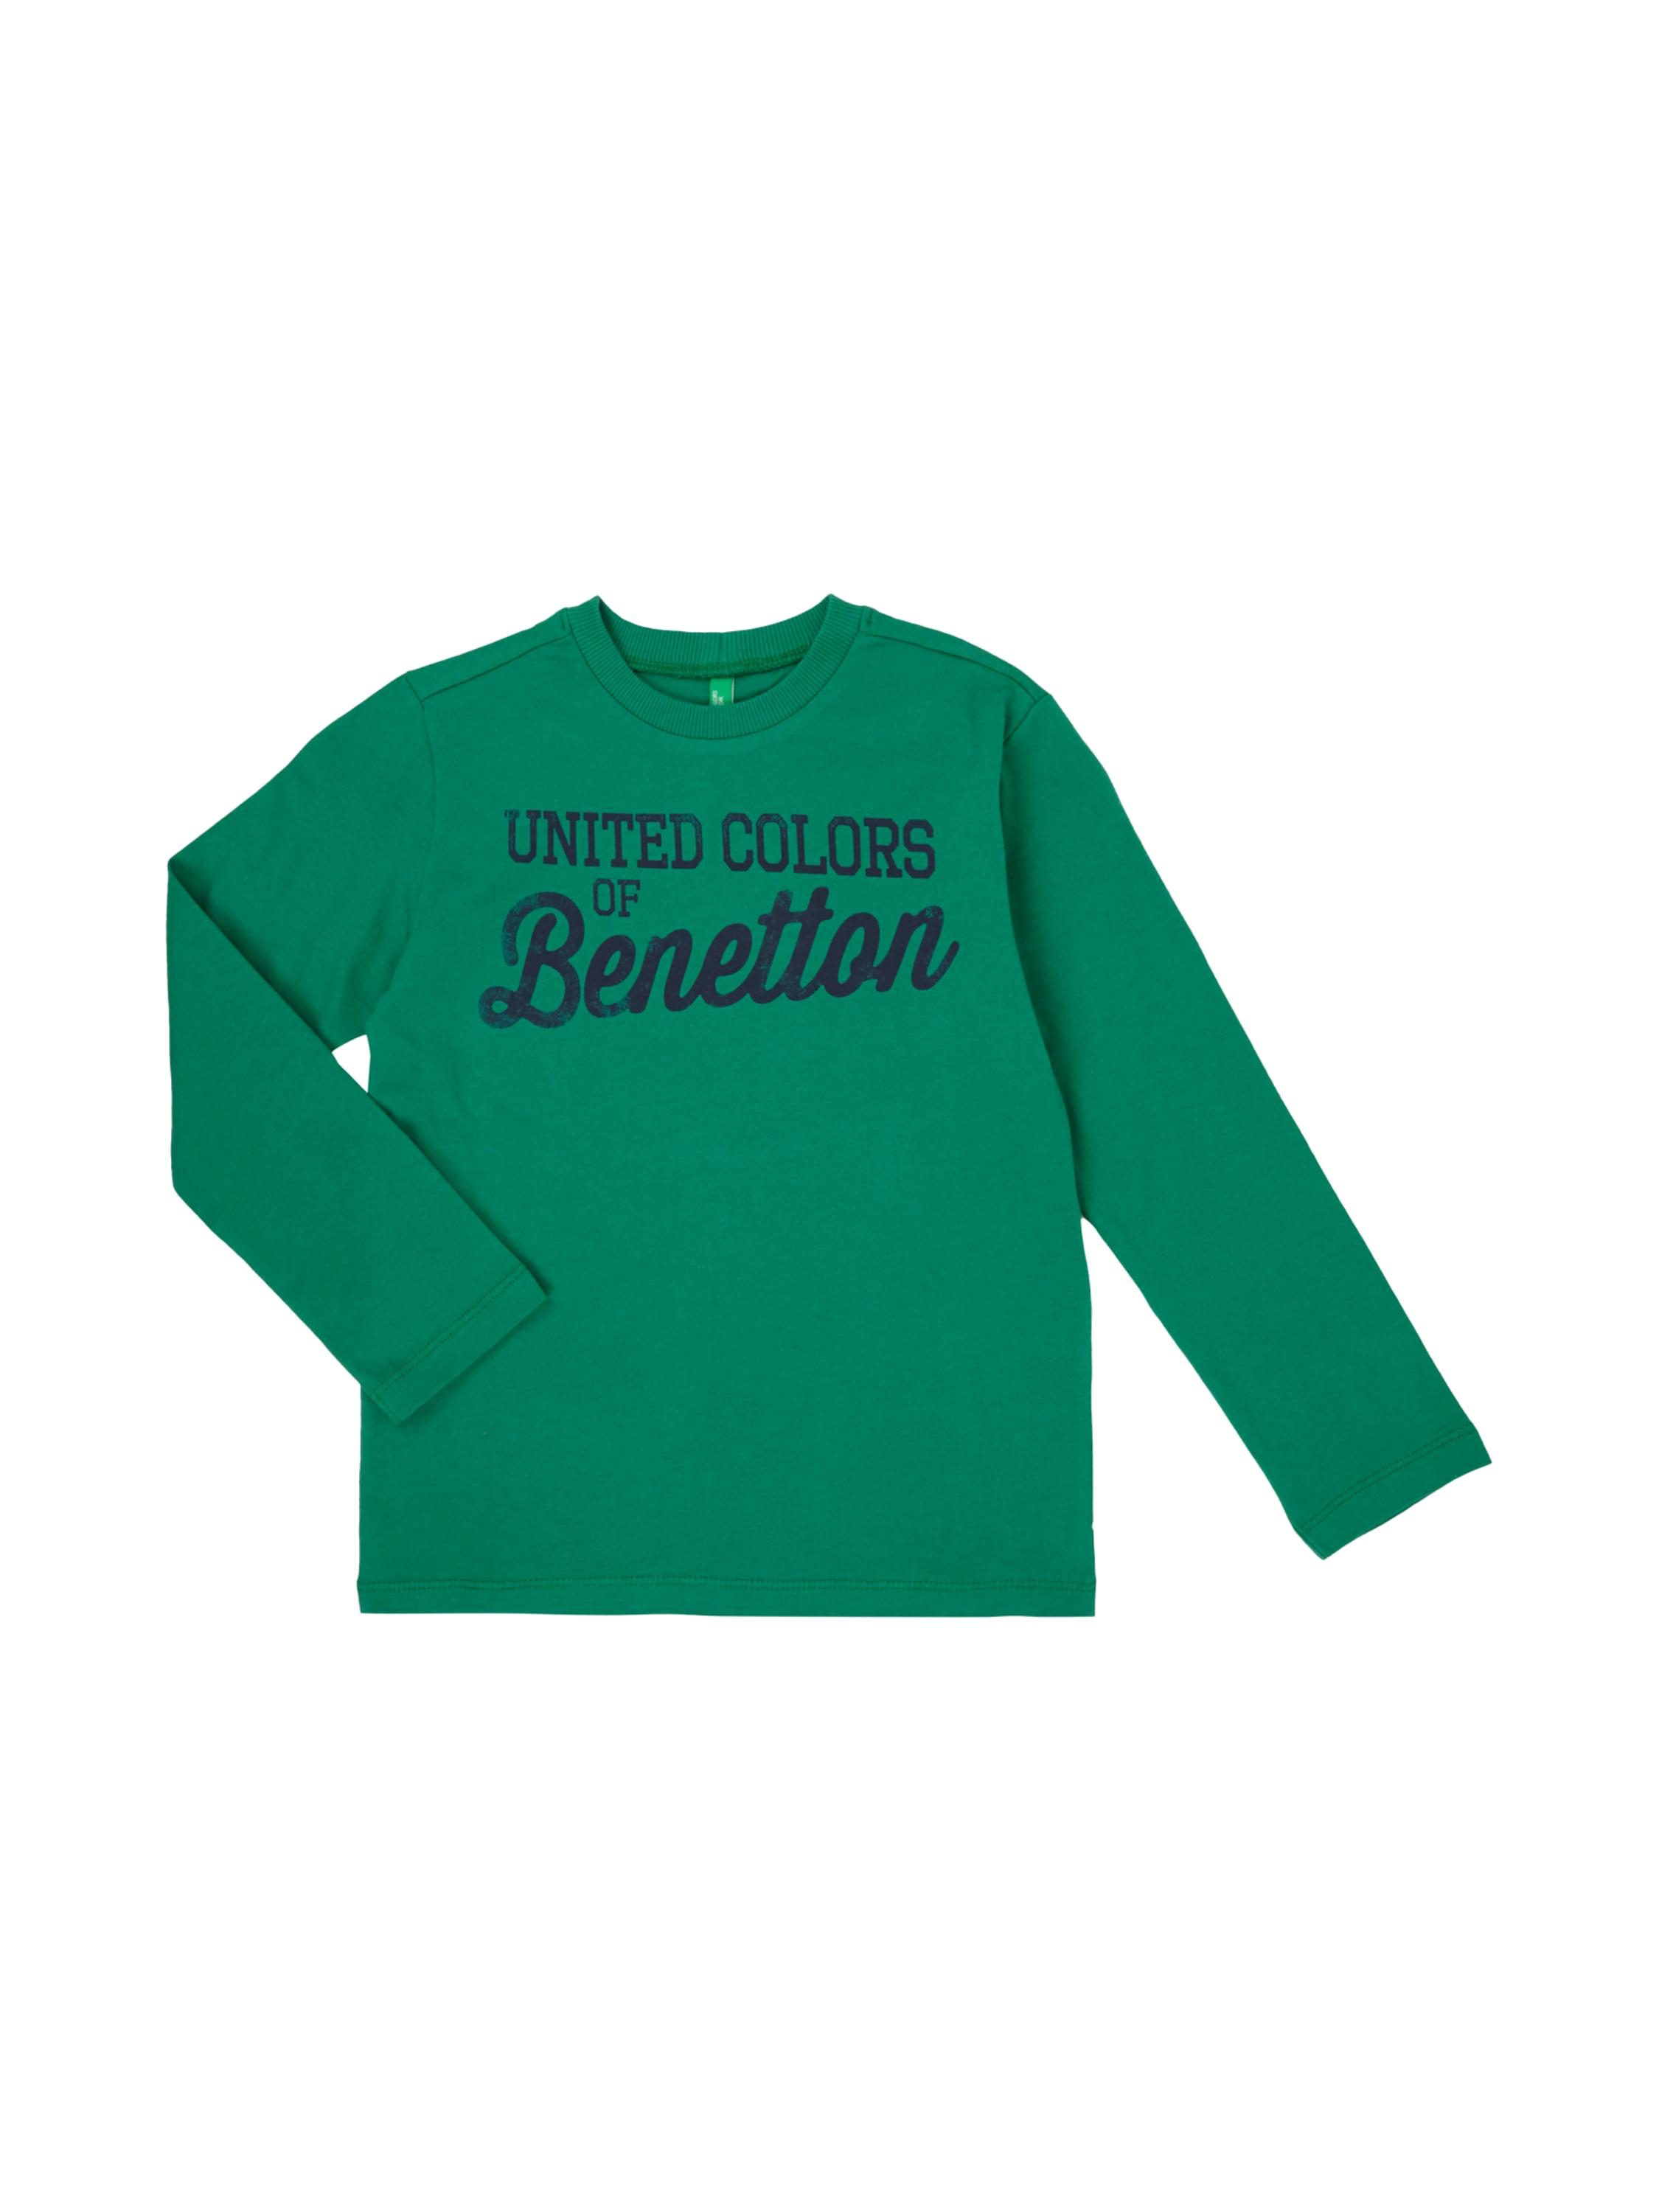 United colors of benetton shirt mit logo print in gr n for United colors of benetton logo